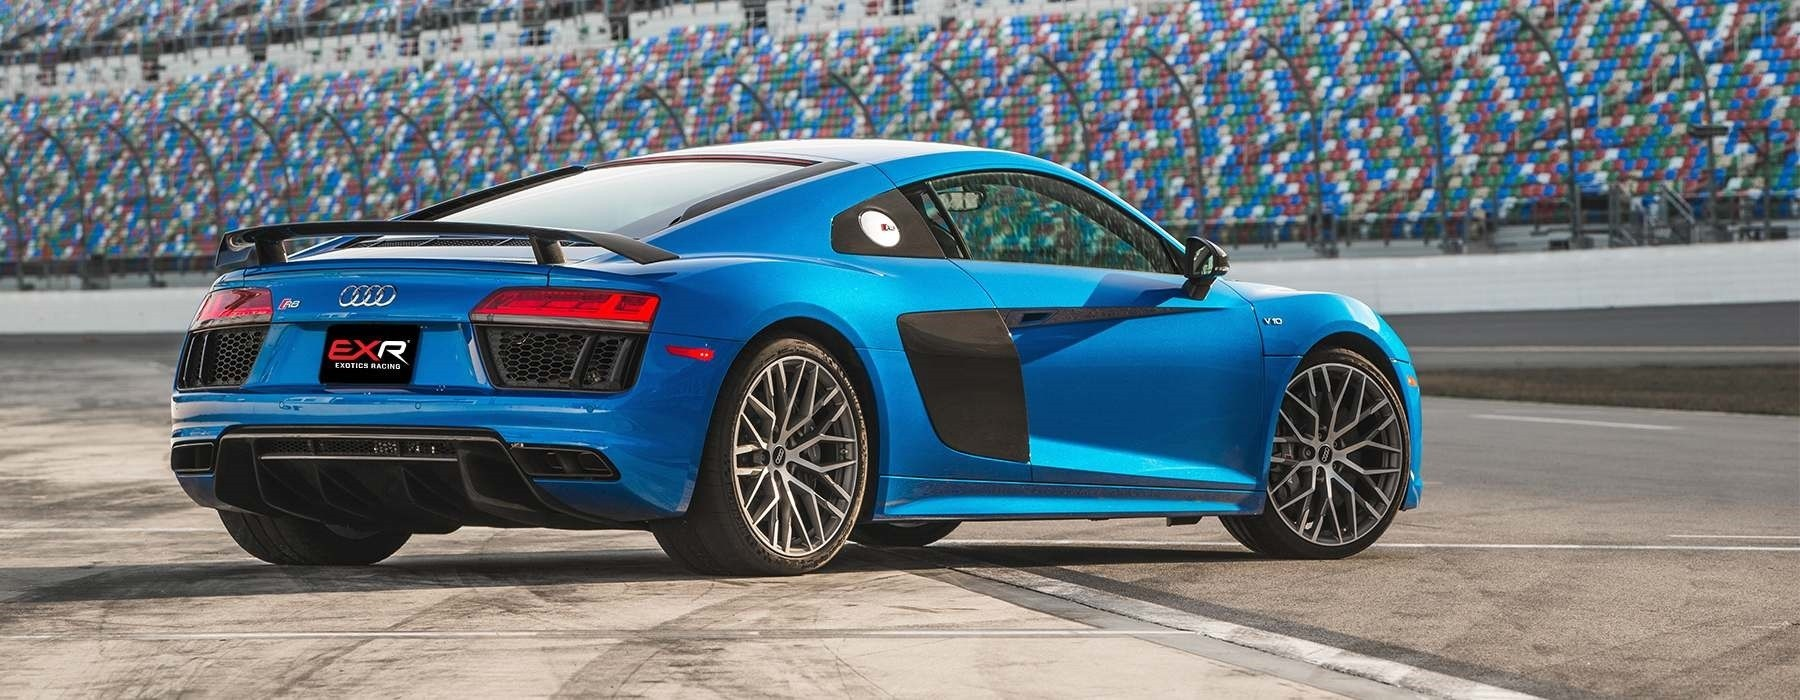 Dream Dealers Racing: Audi R8 V10 - 5 Laps